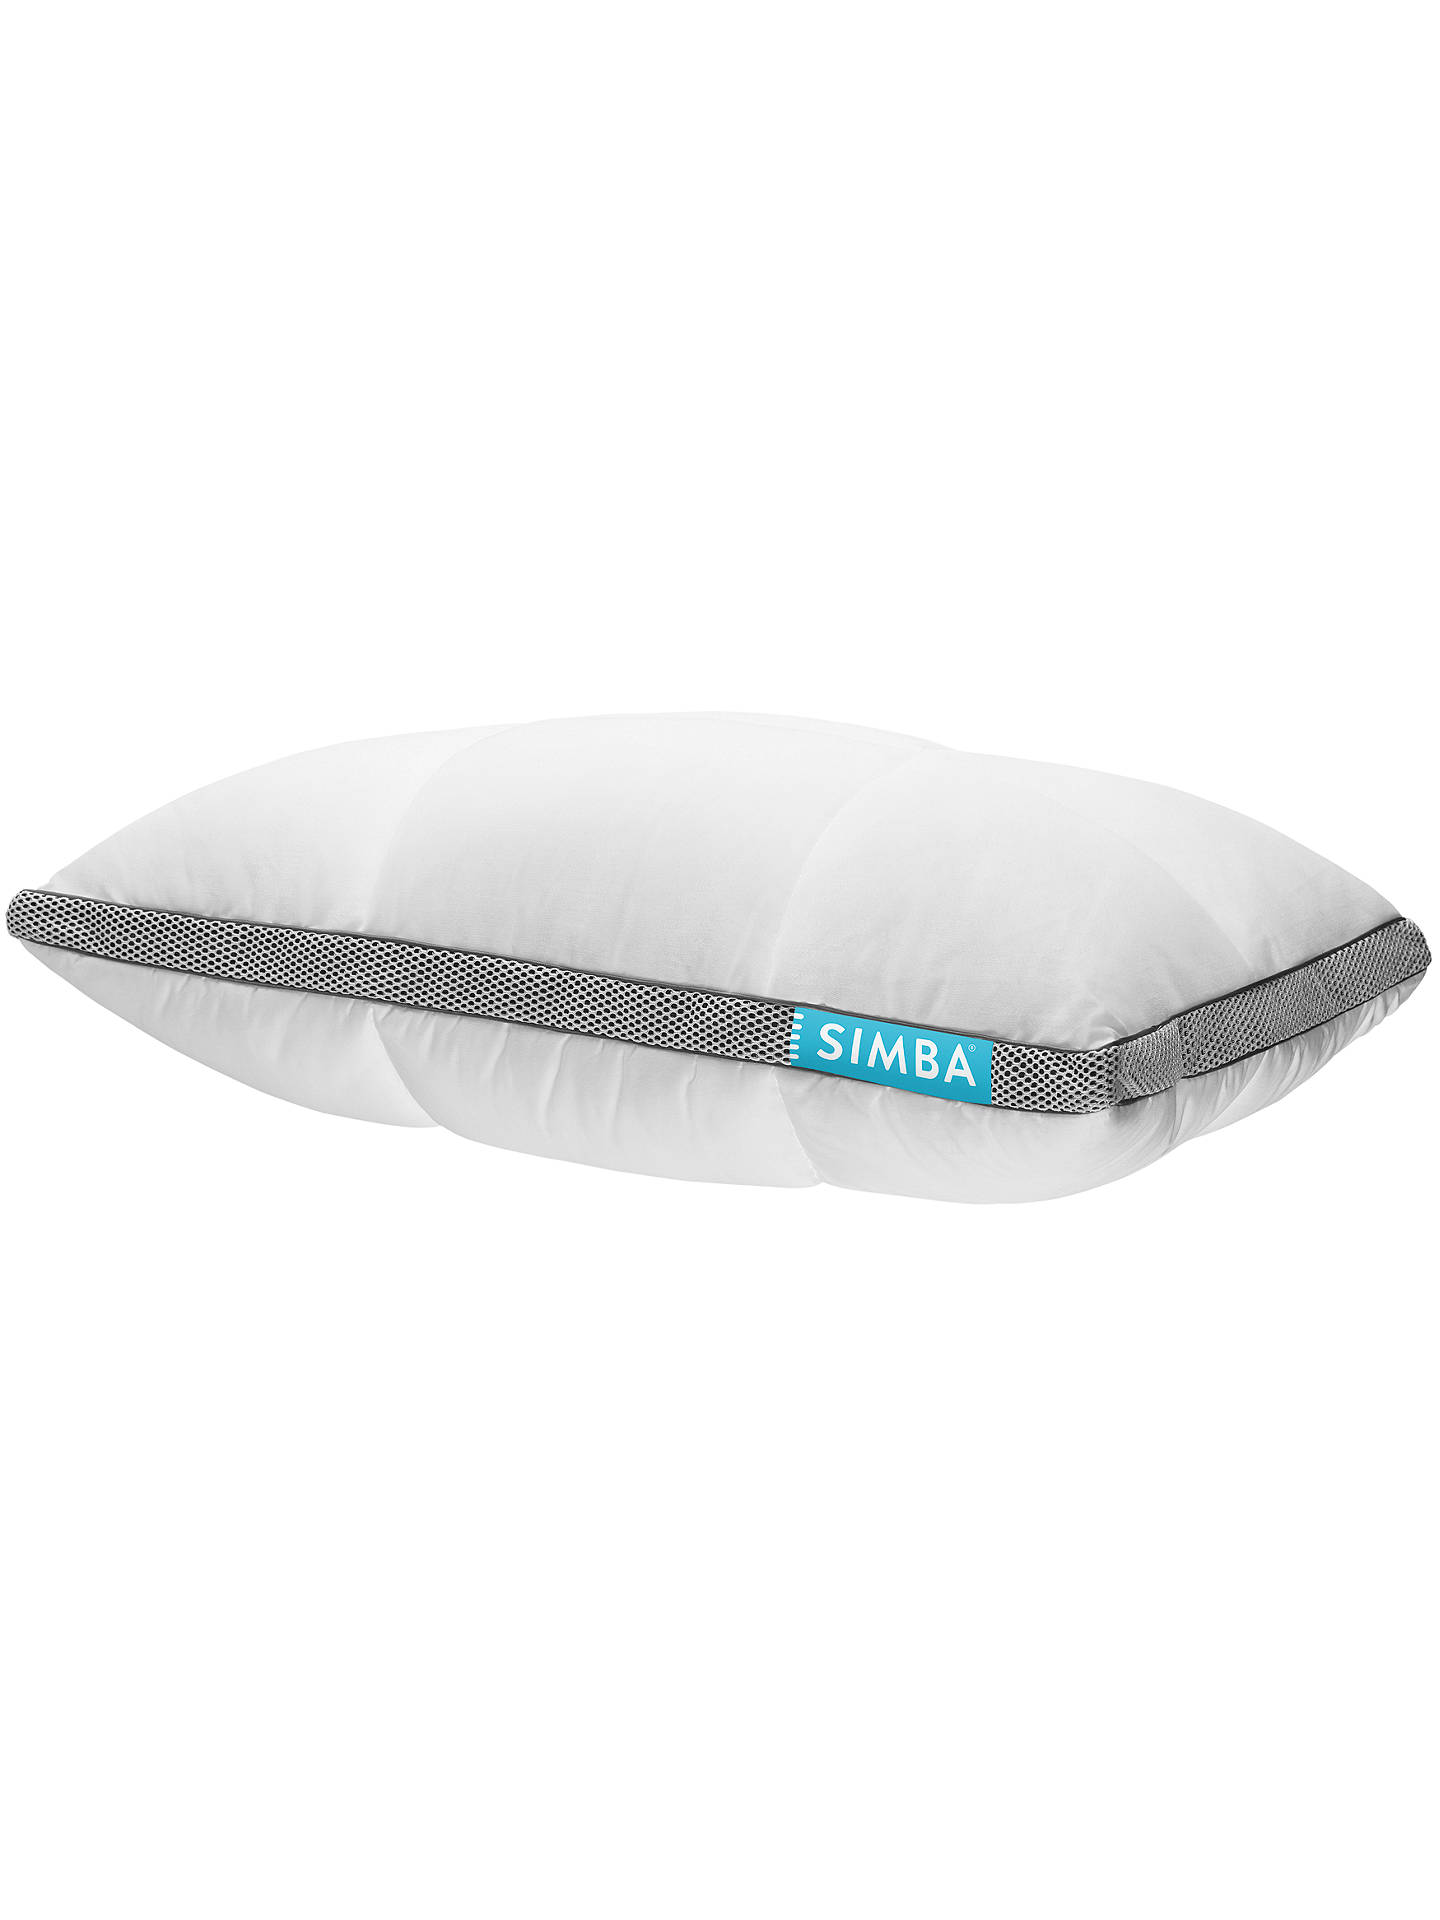 Buy SIMBA Hybrid® Standard Pillow, Adjustable Online at johnlewis.com